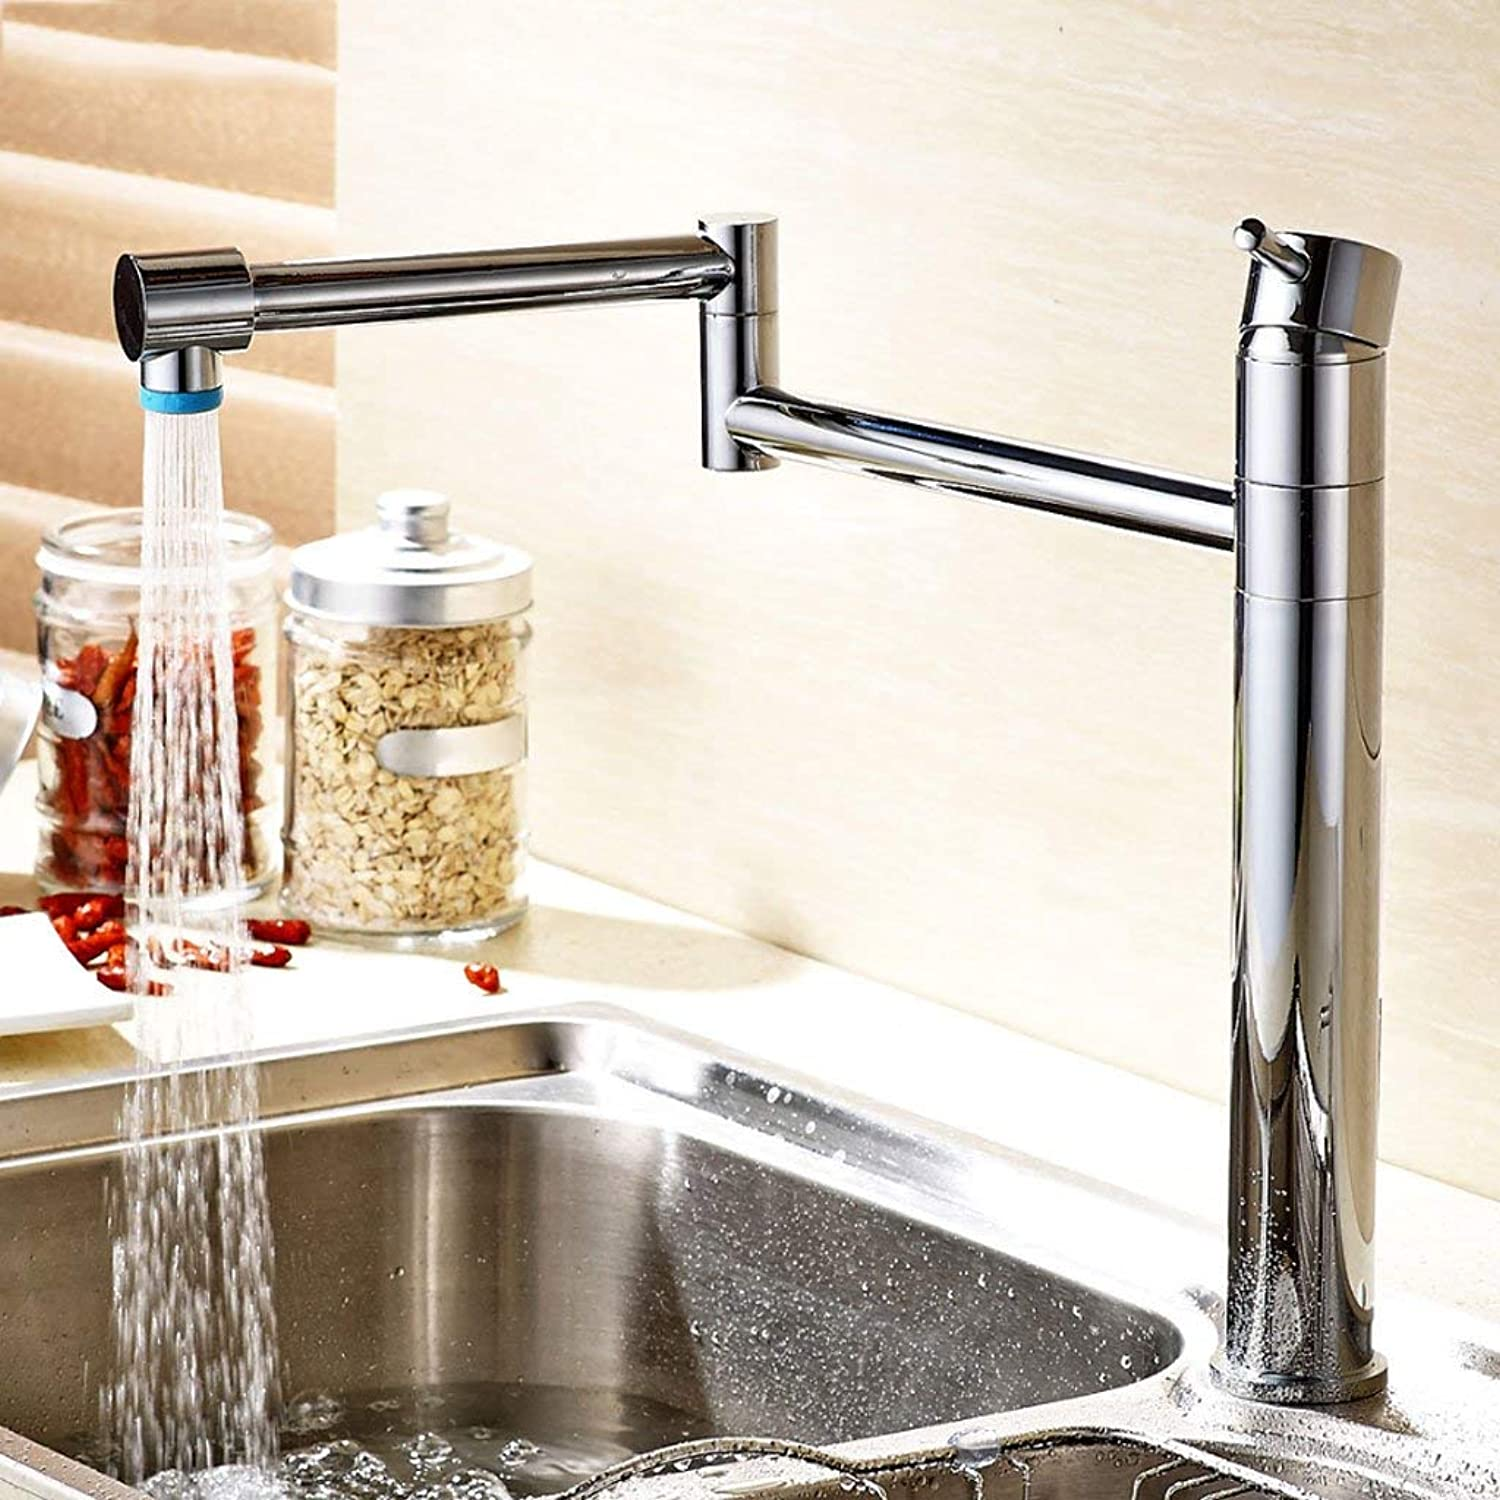 BMY Kitchen Sink Taps Modern Minimalist Pure Copper Collapsible Vegetables Basin Sink Faucet Hot And Cold Kitchen Faucet Scalable Stretch